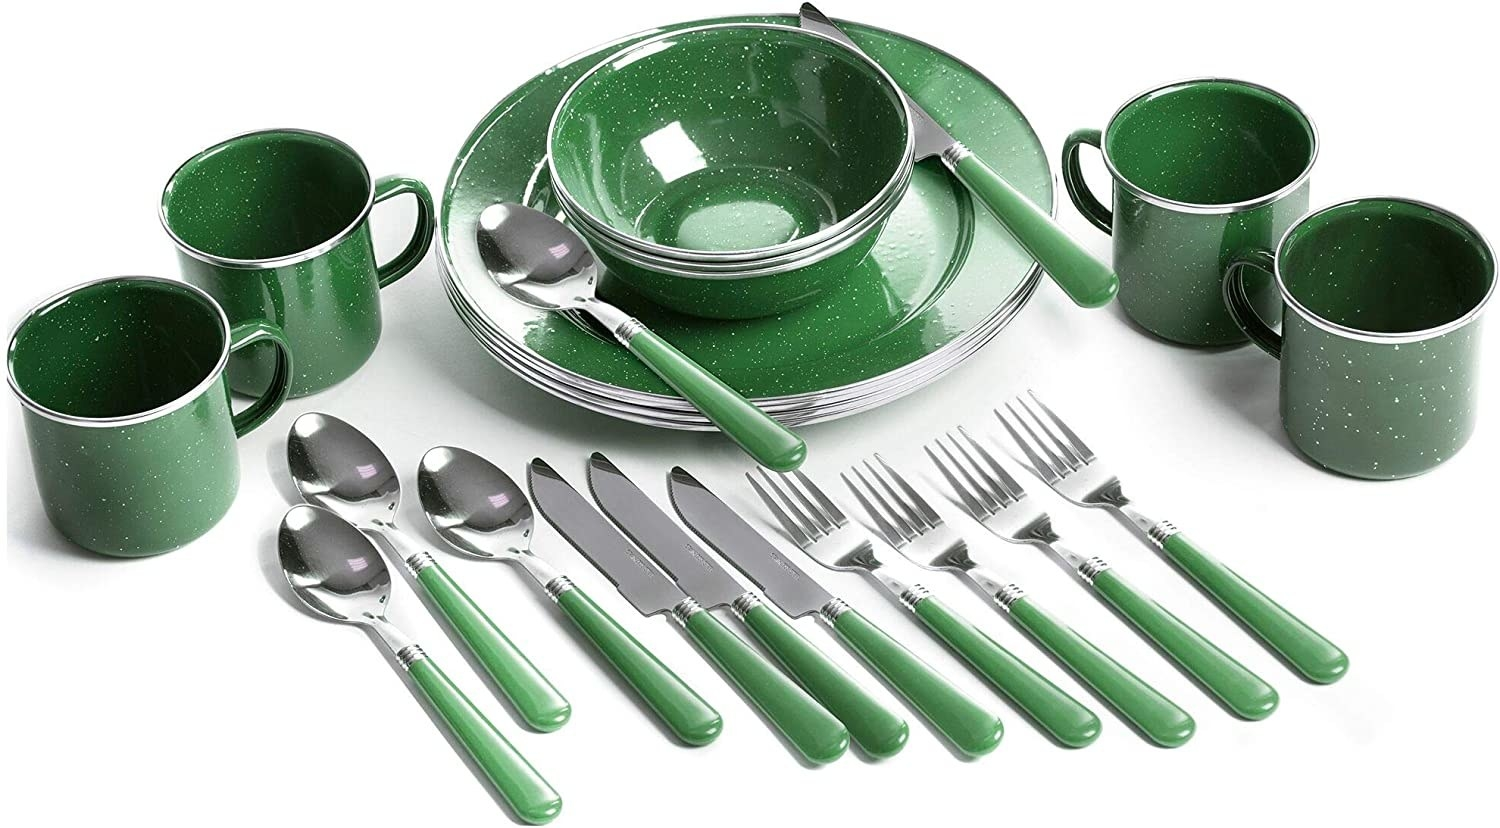 Photo of the green and white speckled set. There are four plates, four bowls, and four mugs, along with four each of forks, knives, and spoons